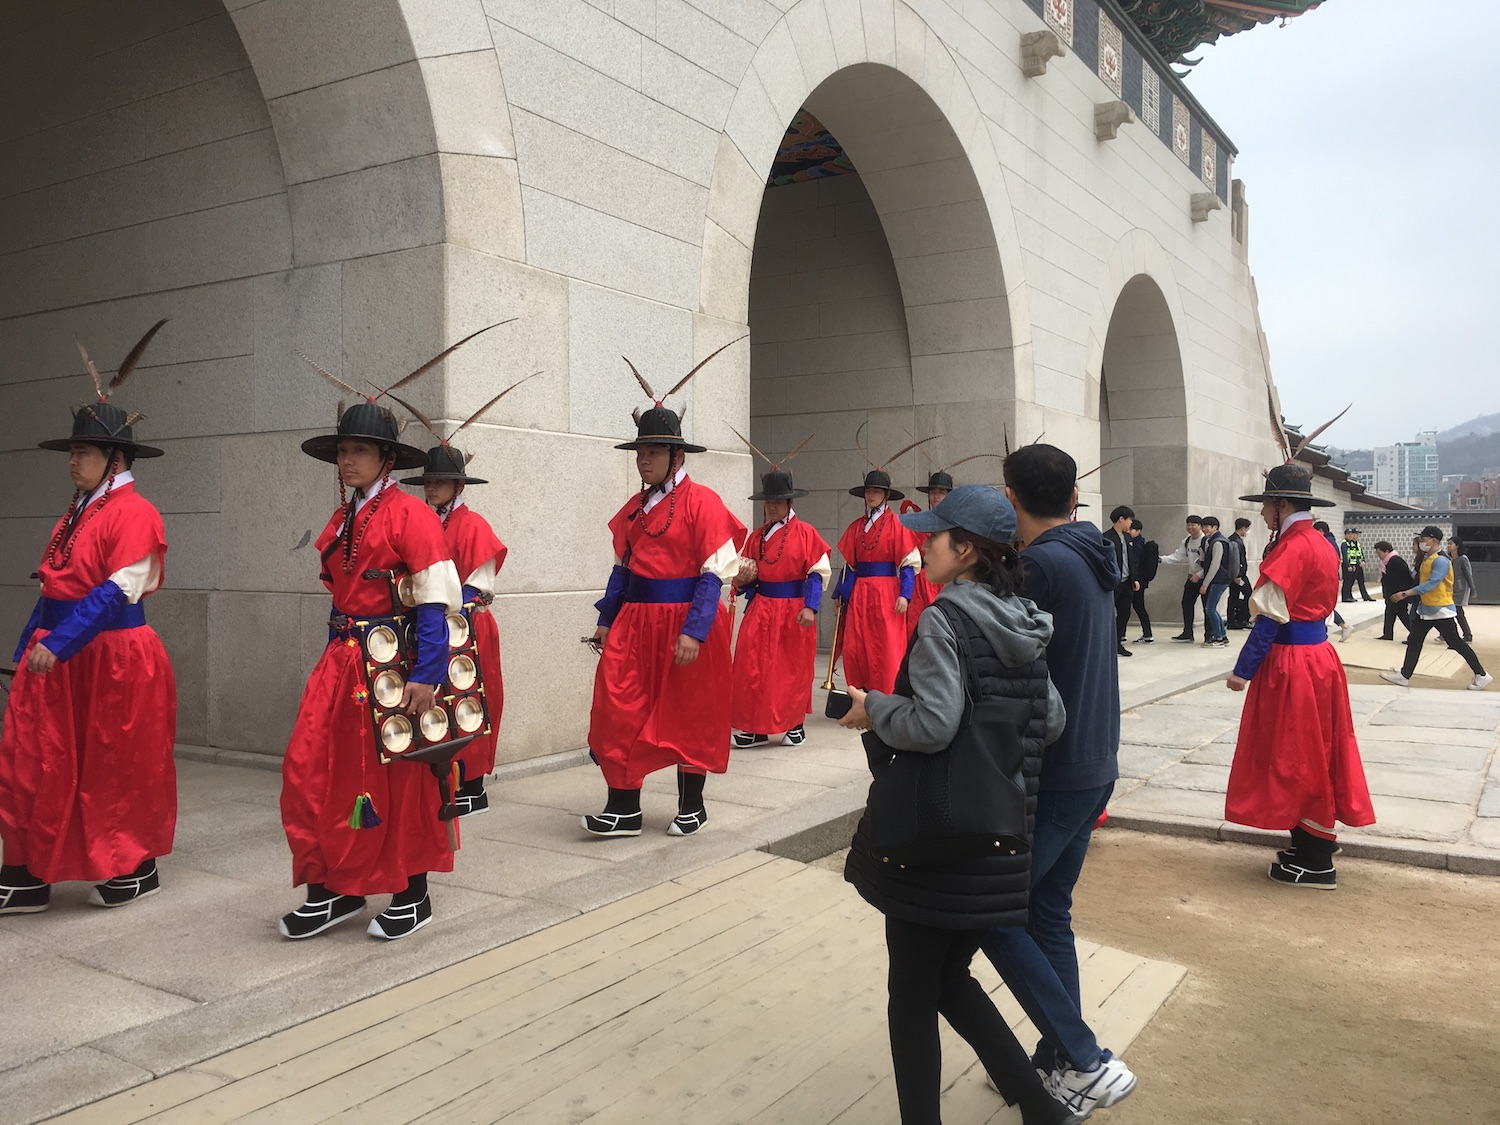 Guards of a palace on their routine patrol